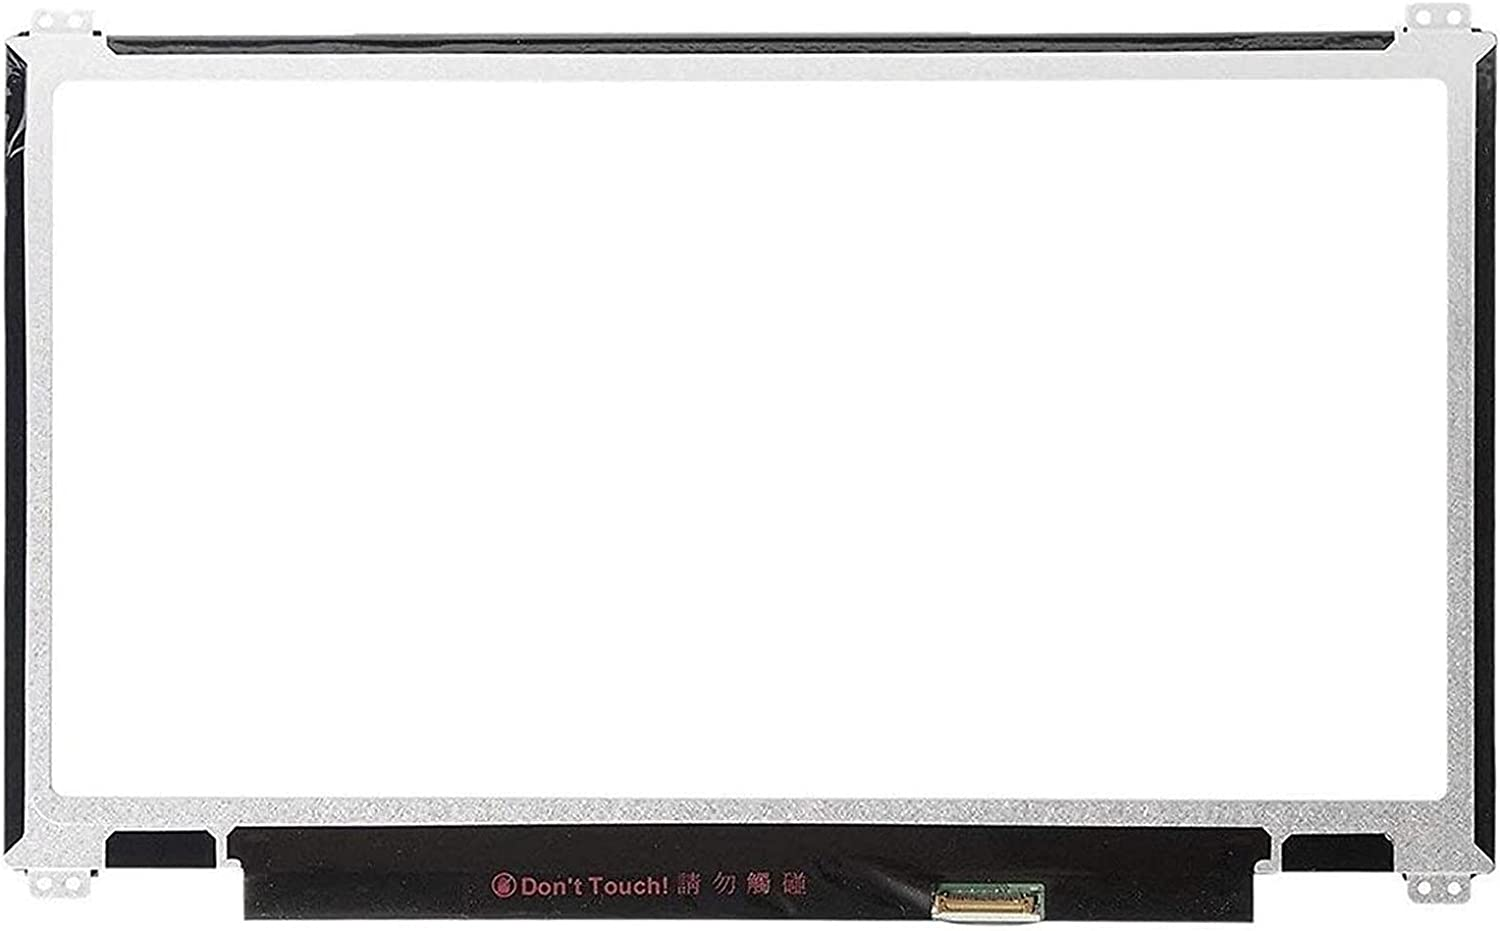 New Screen Replacement for Dell Latitude 7490 7480 FHD 1920x1080 IPS Matte LCD LED Display Test Well